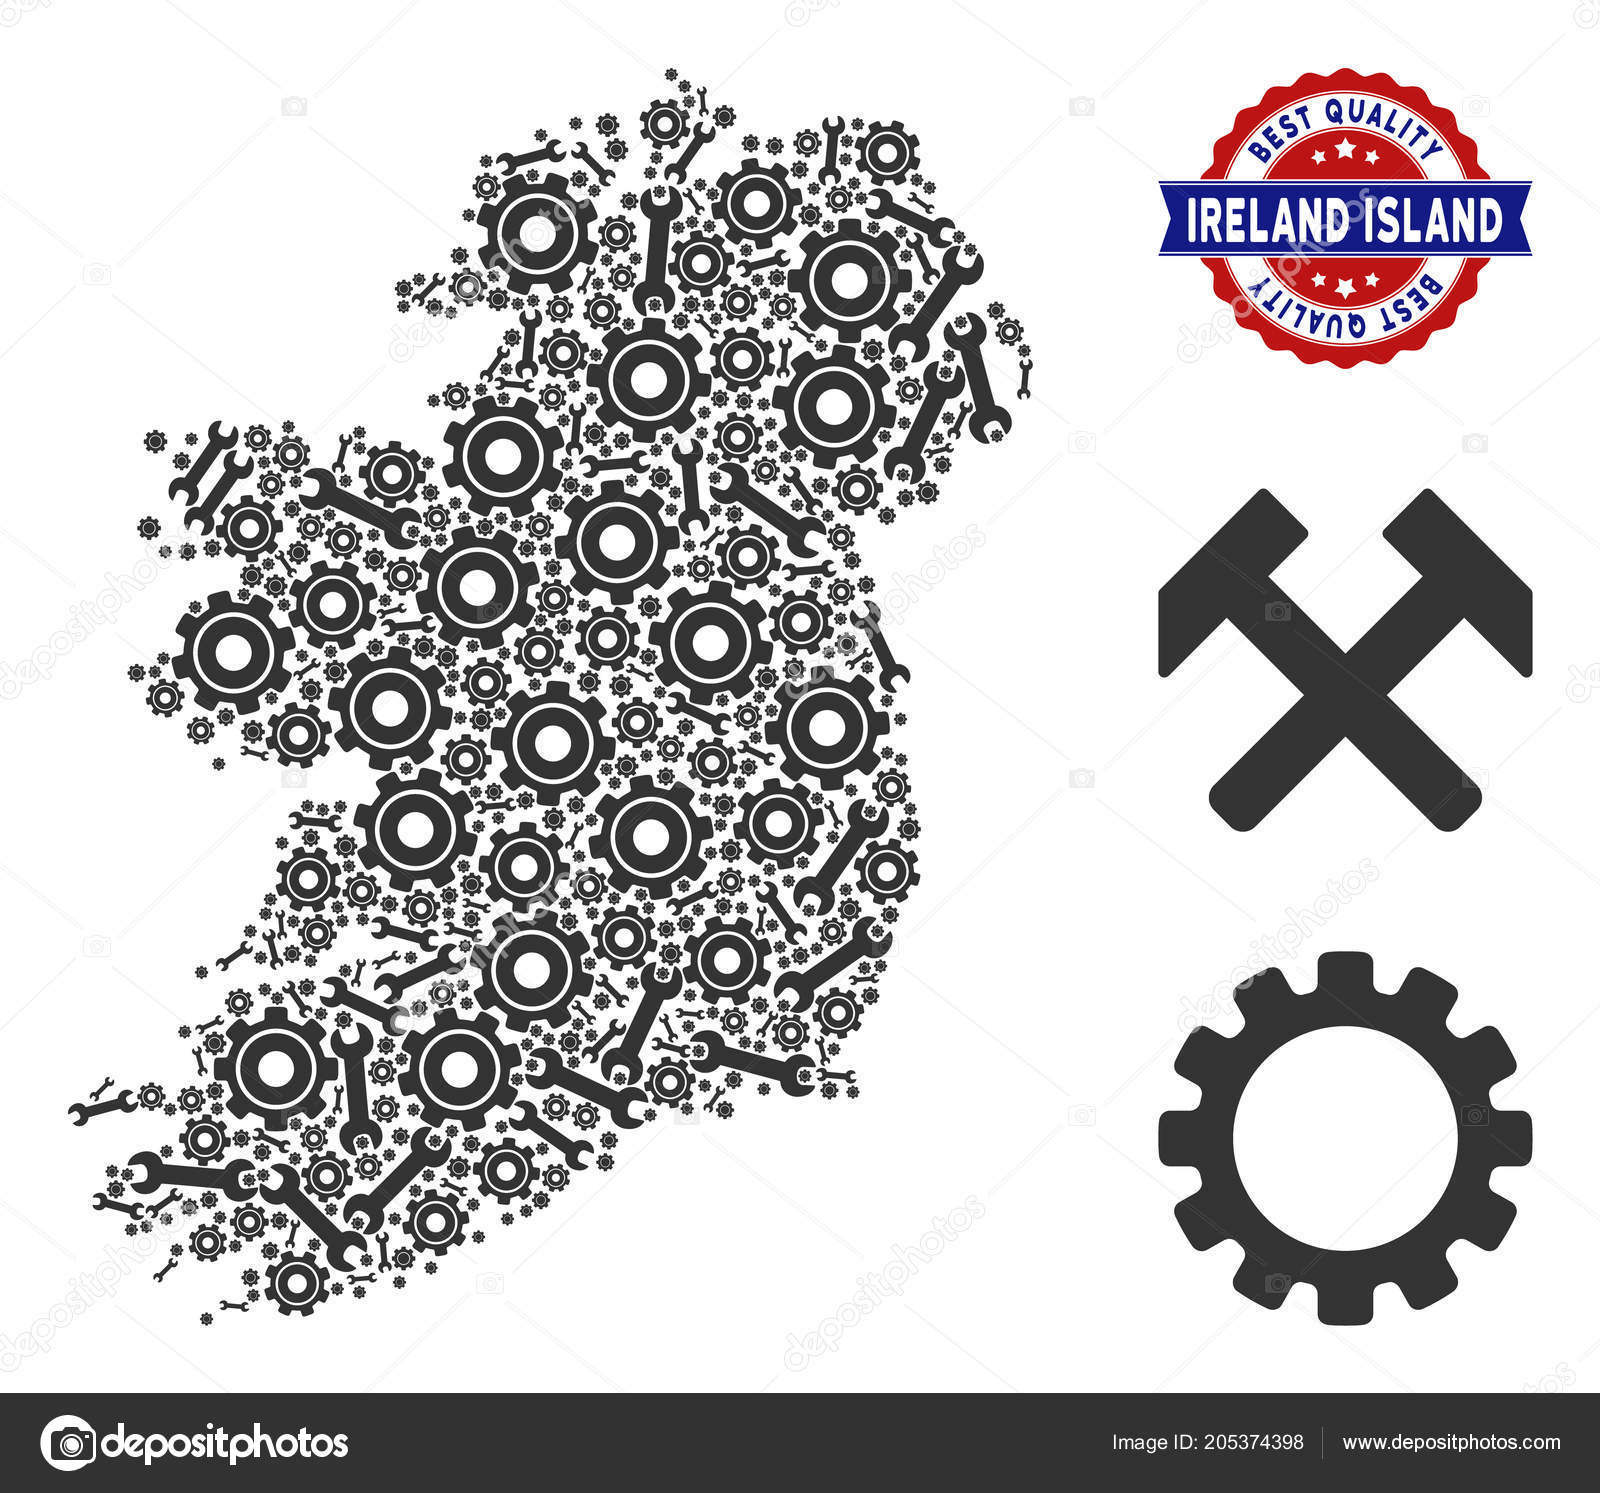 Industrial Map Of Ireland on natural resources found in ireland, france map great britain ireland, map s and n ireland, tourism ireland,